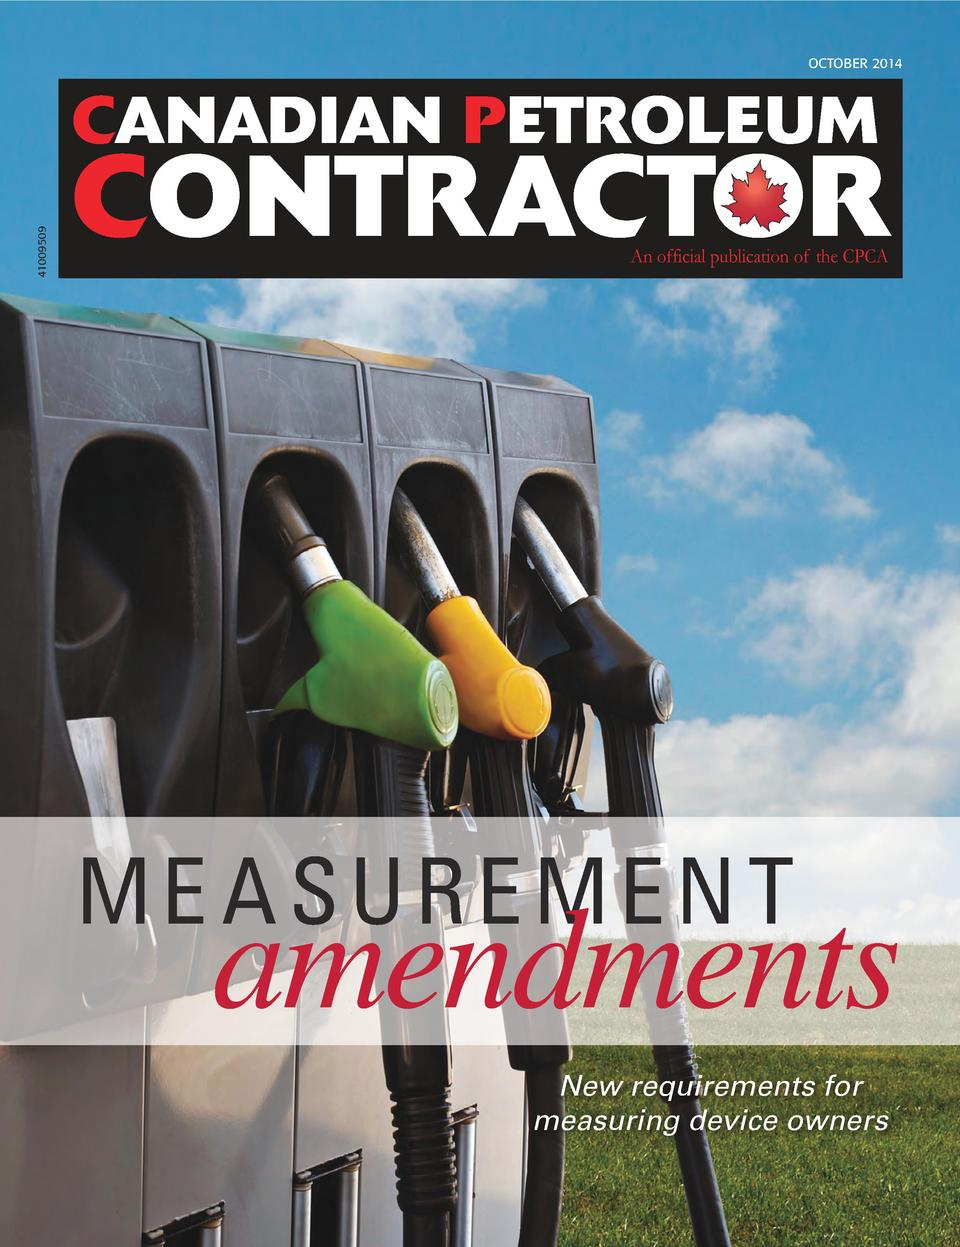 CONTRACTOR An official publication of the CPCA  OCTOBER 2014  41009509  CANADIAN PETROLEUM  CONTRACTOR An official publica...